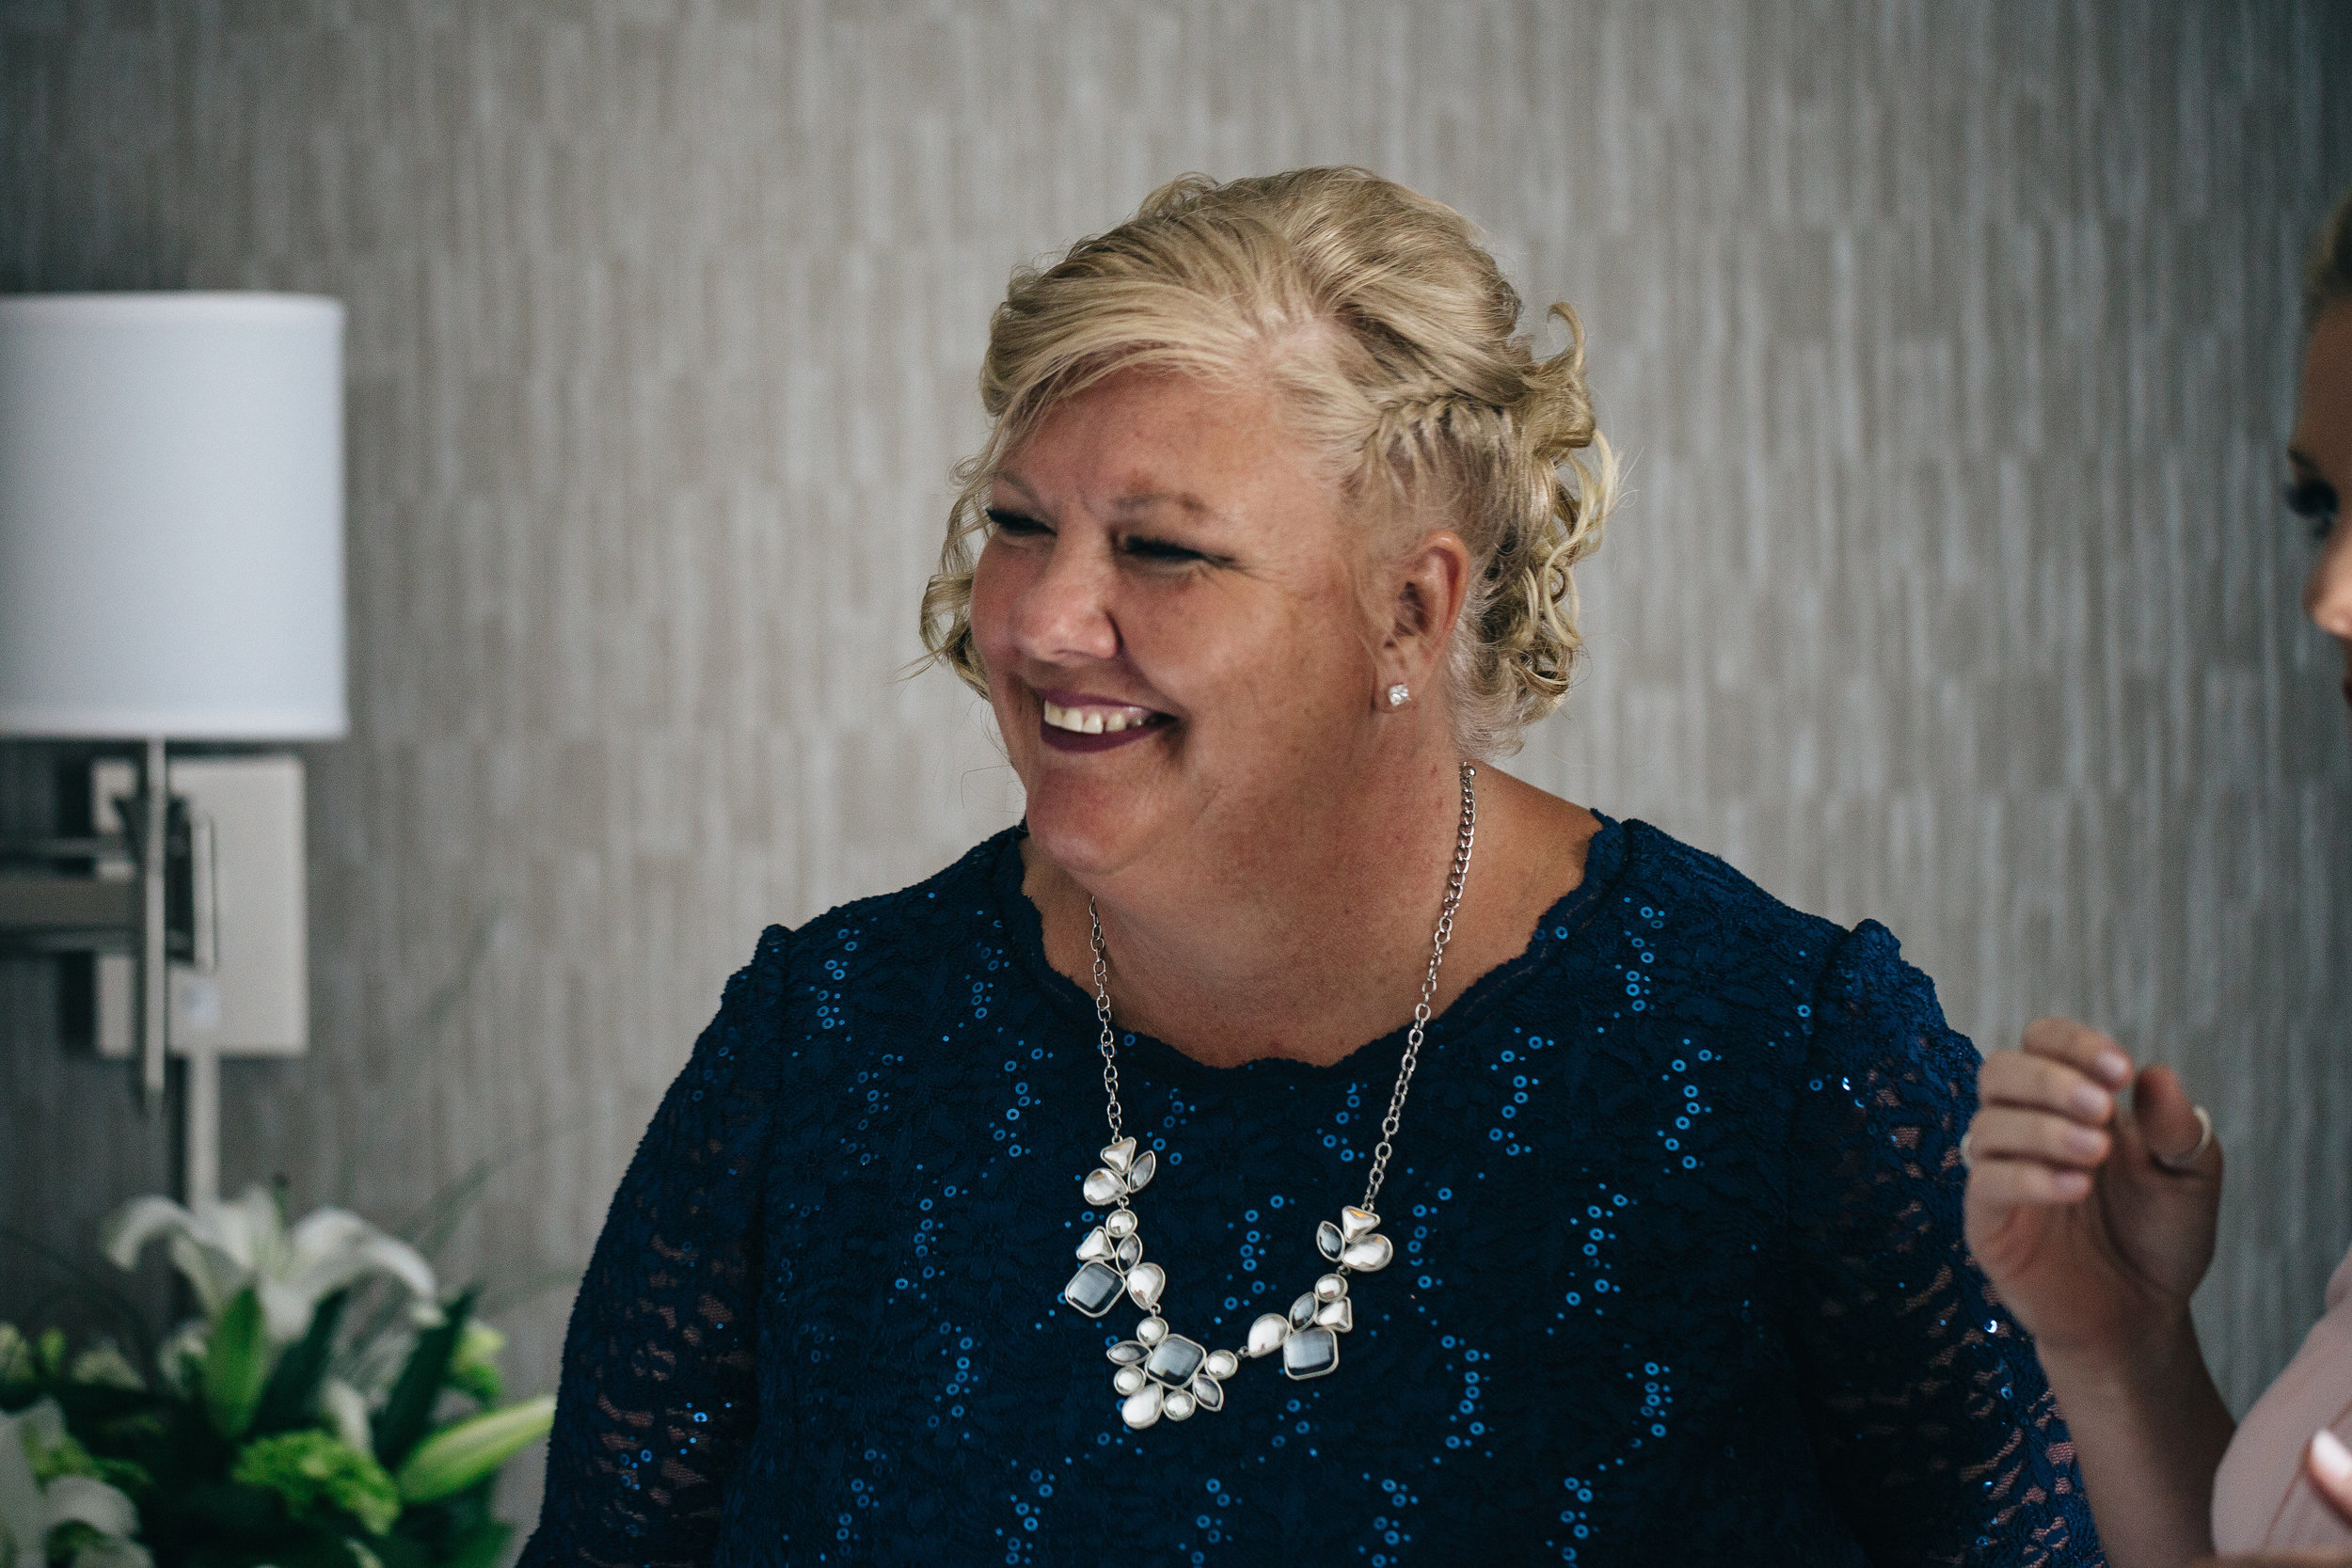 Mother of the bride smiles while her daughter gets ready for her wedding ceremony.